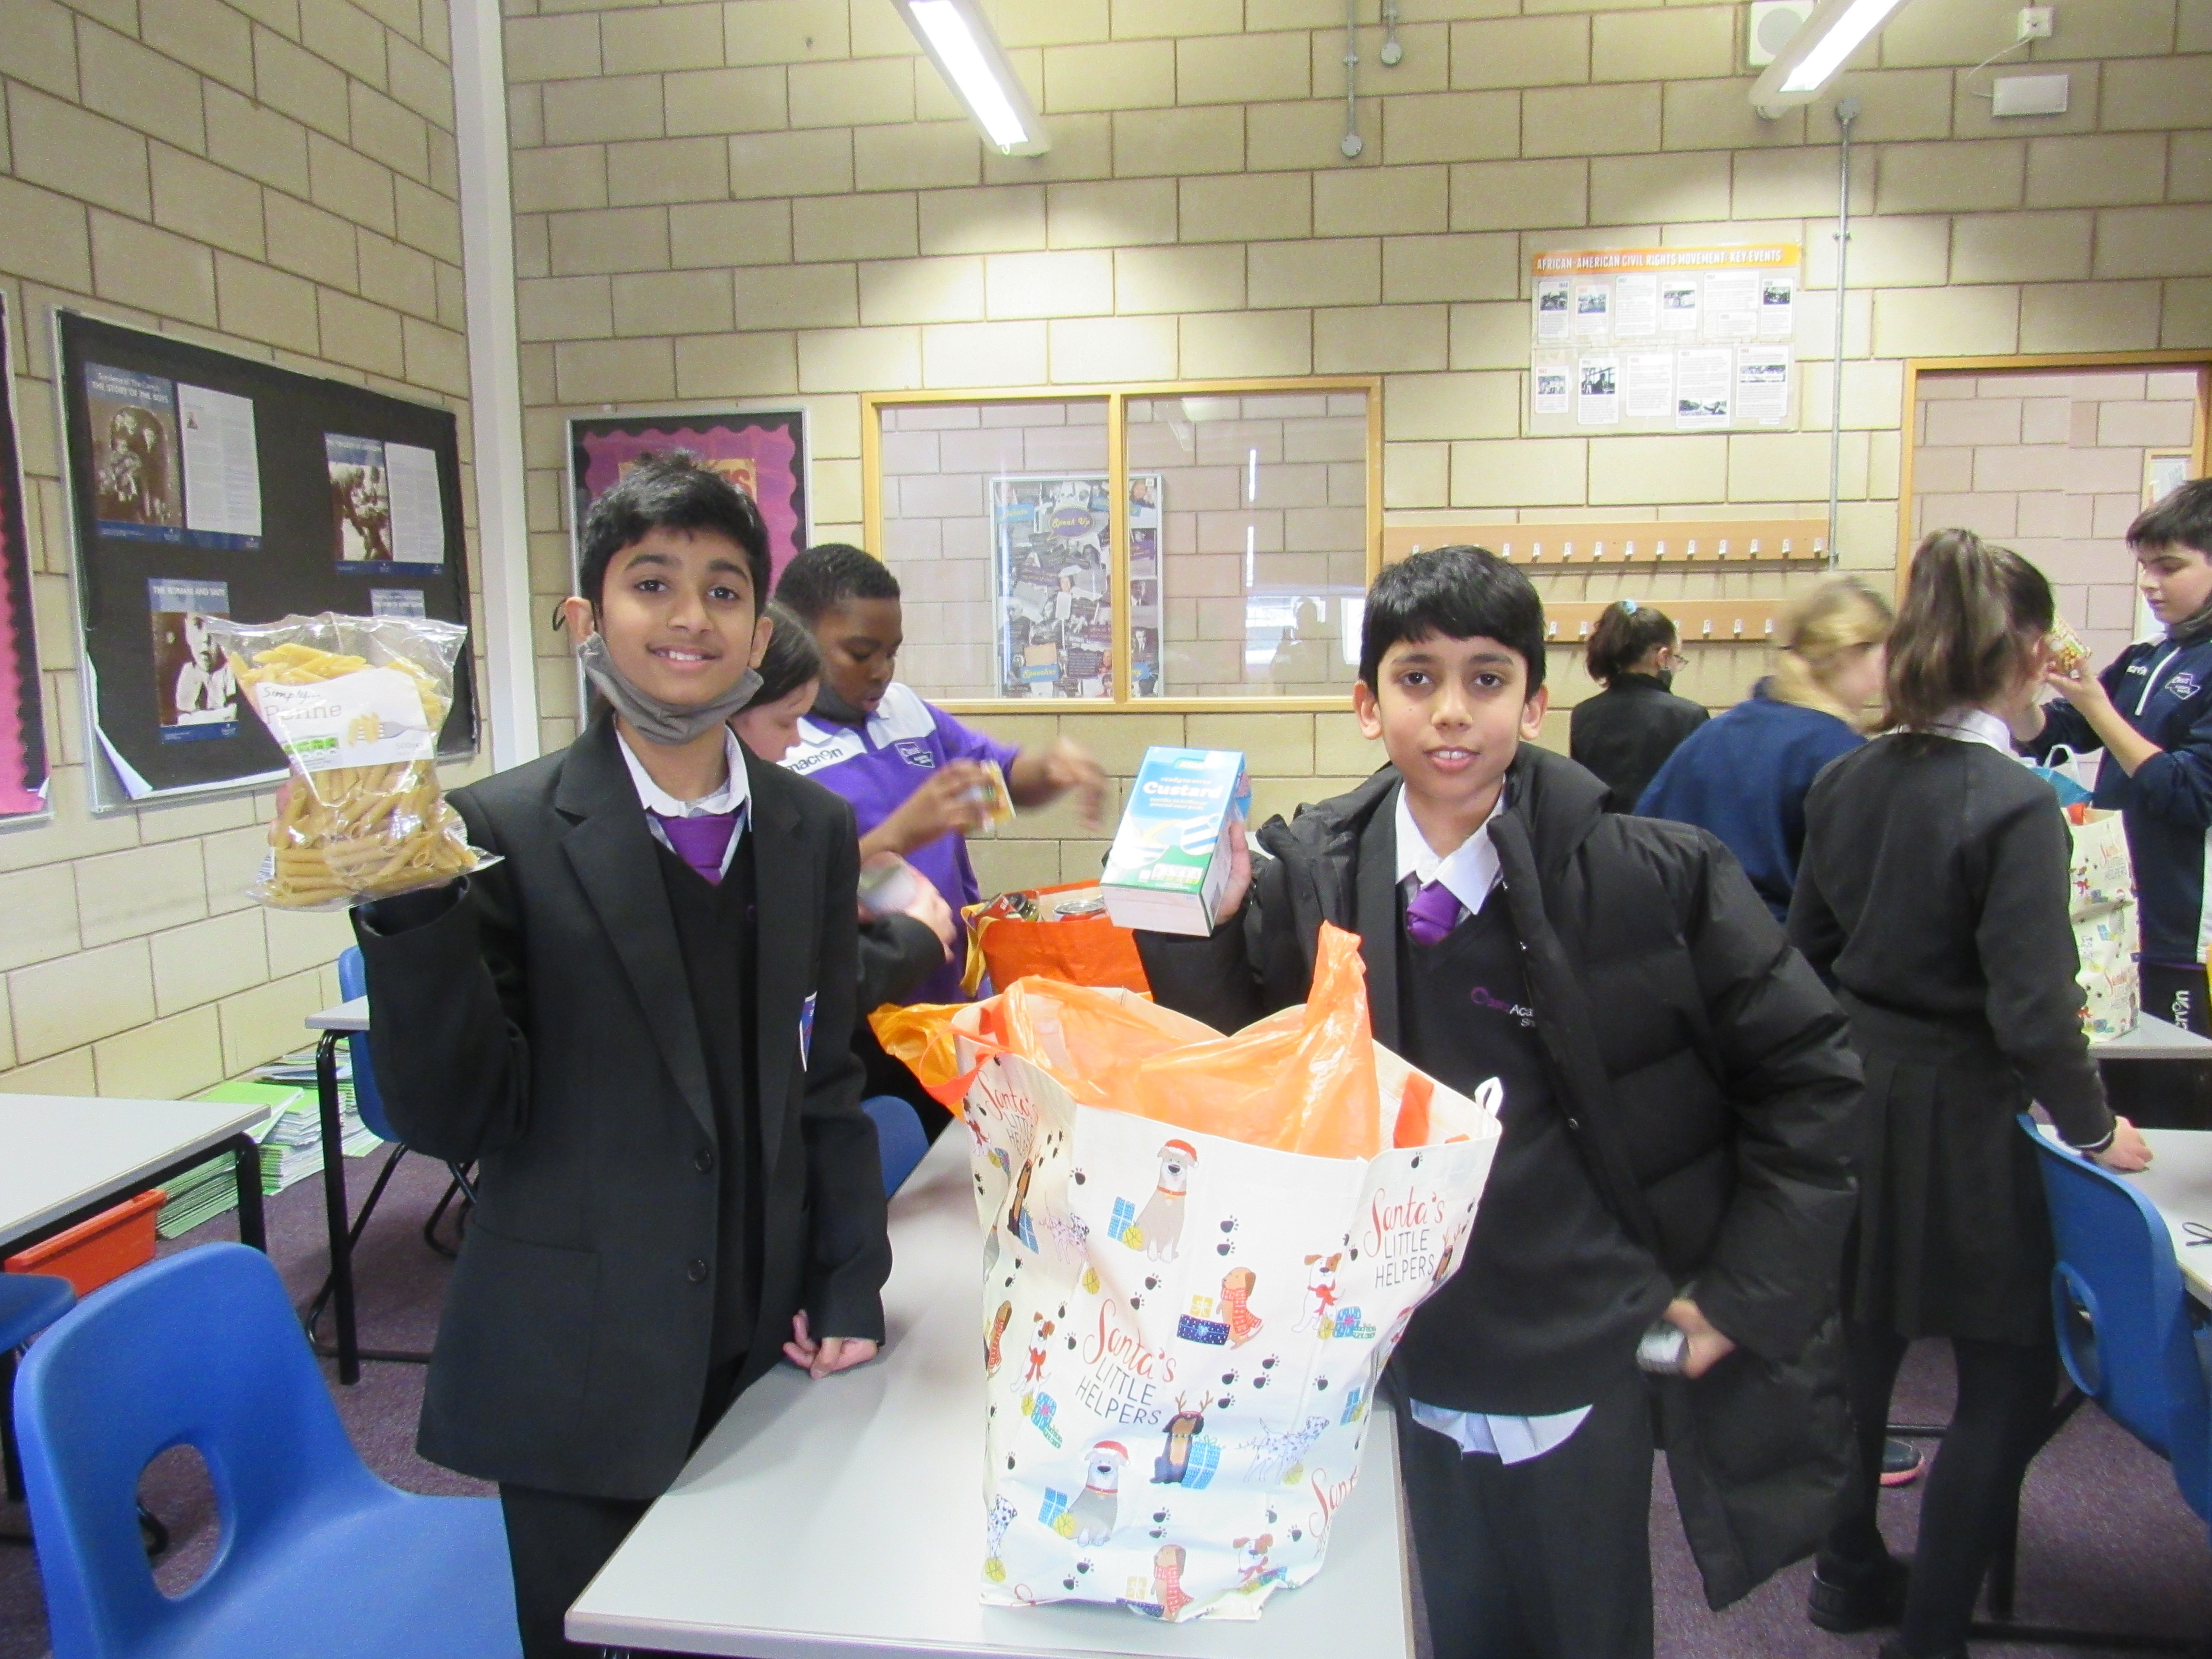 Year 7 WE Charity Committee Food Bank Donations